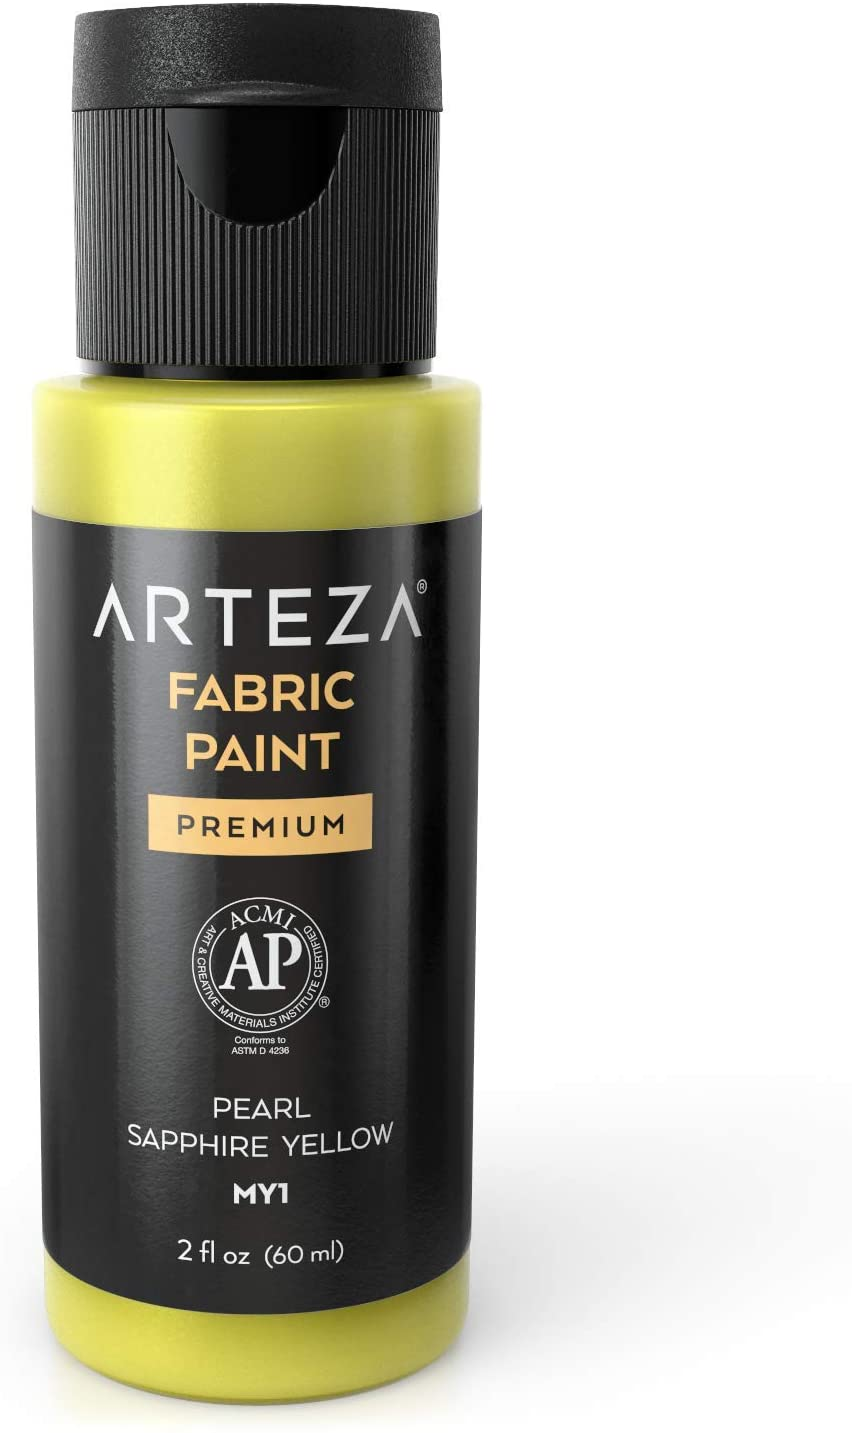 Arteza Permanent Fabric Paint MY1 Pearl Sapphire Yellow, 60 ml Bottle, Washer & Dryer Safe, Textile Paint for Clothes, T-Shirts, Jeans, Bags, Shoes, DIY Projects & Canvas